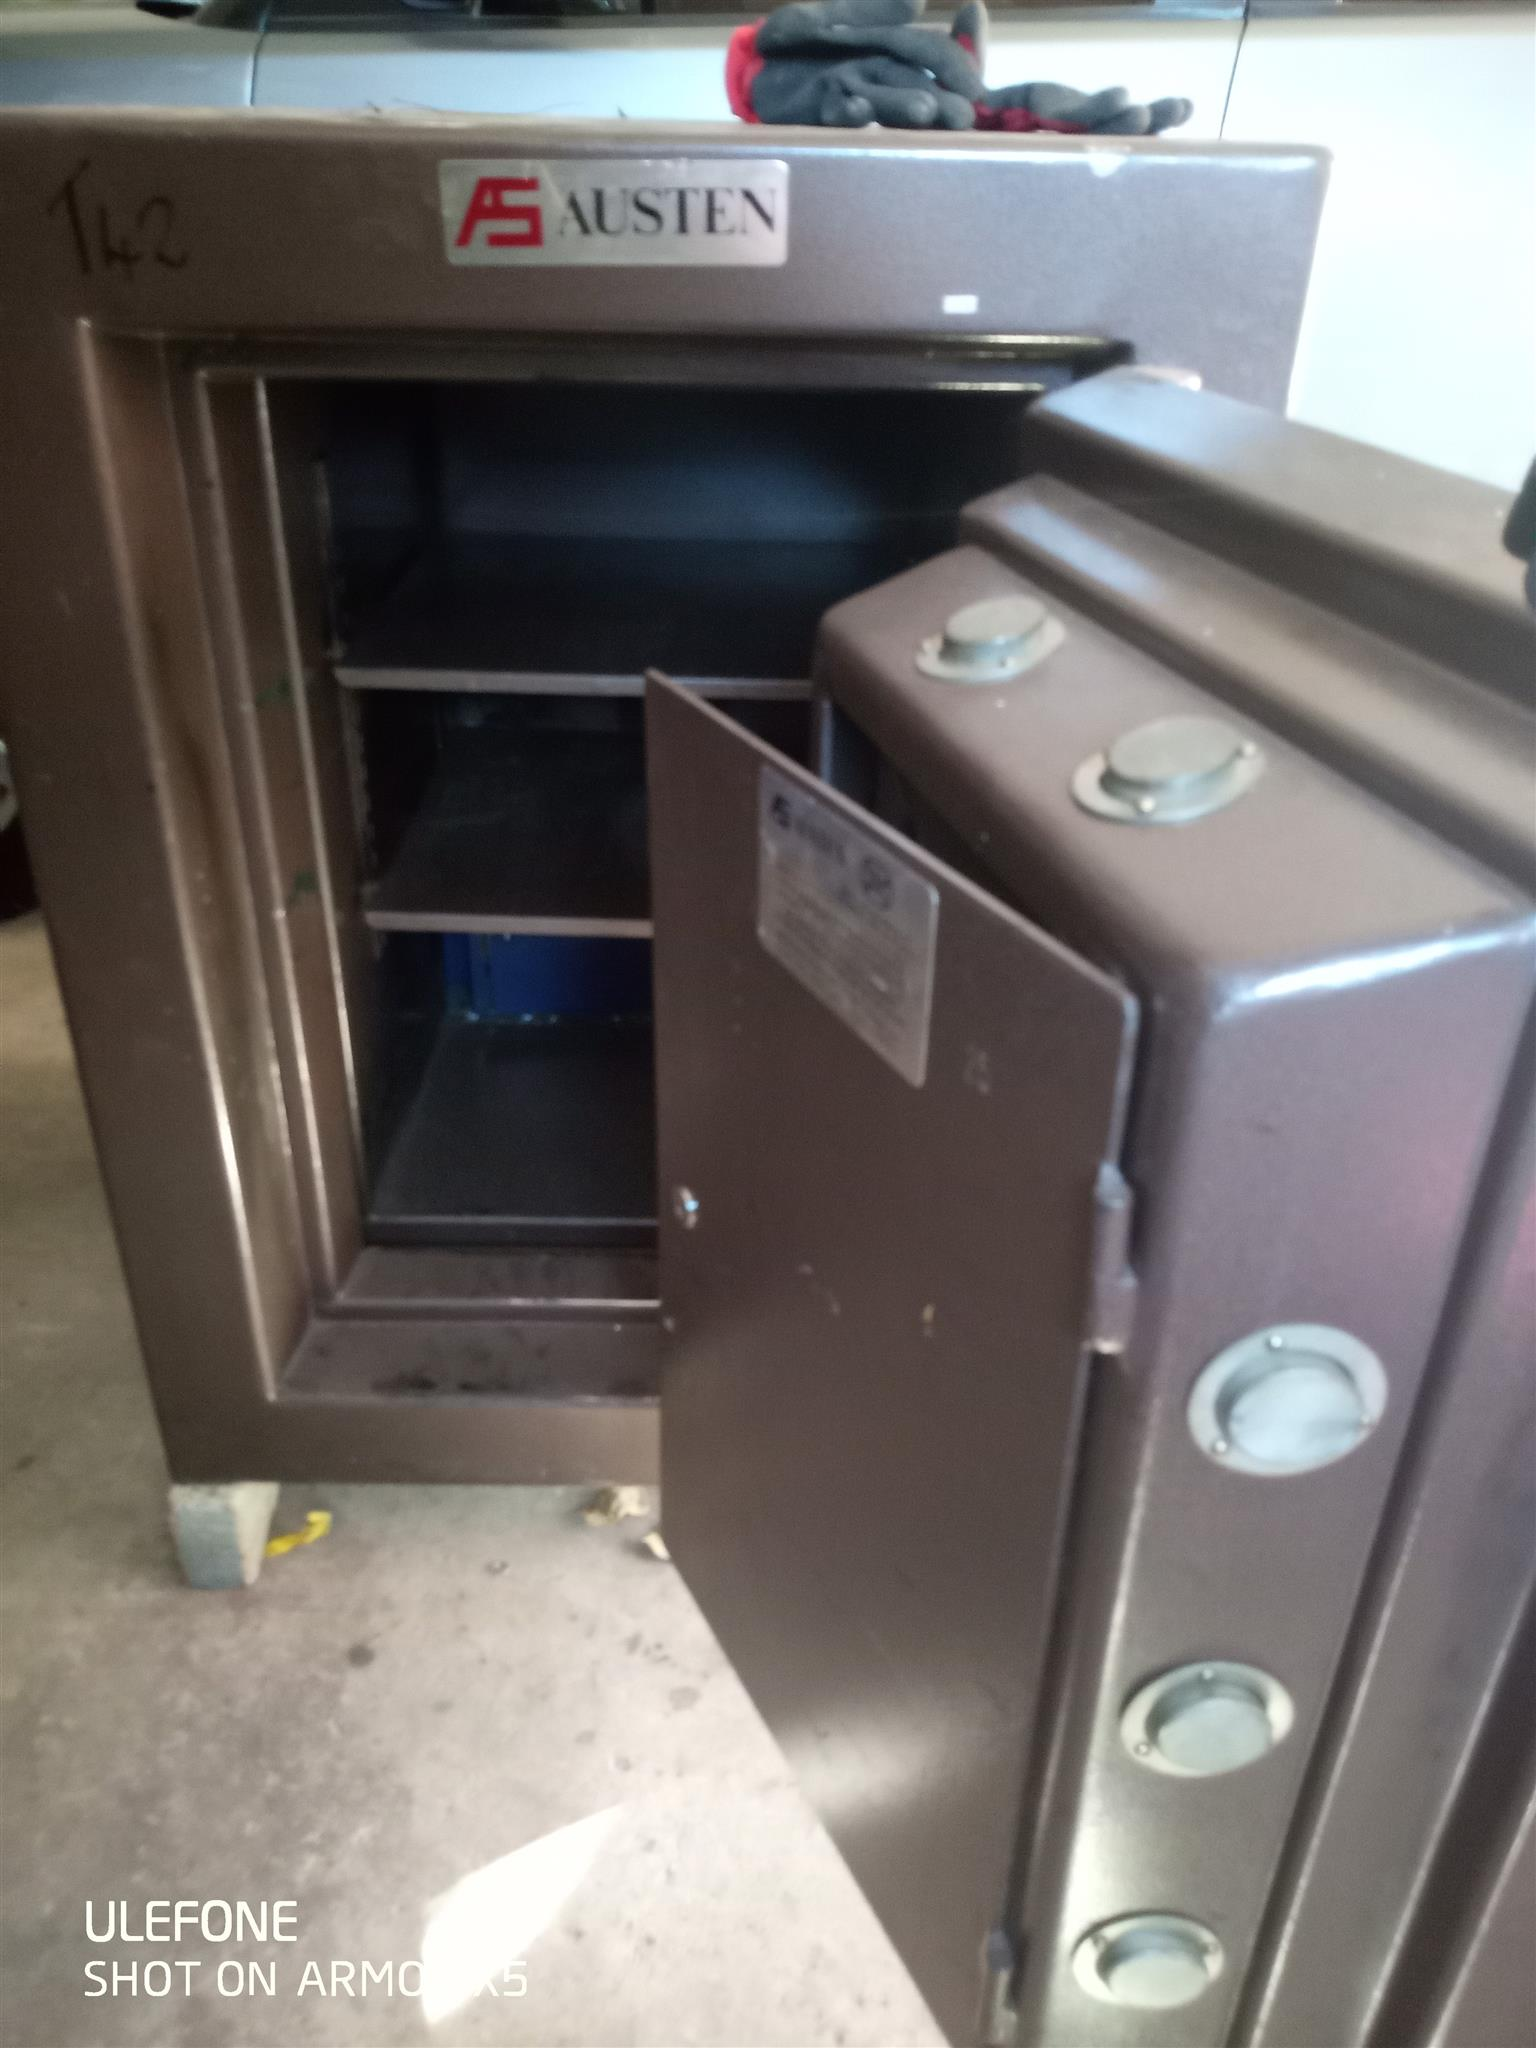 Safe, Category 3 Austen Safe, Like new  H960 x W750 x D810  Delivery can be arranged at extra cost.